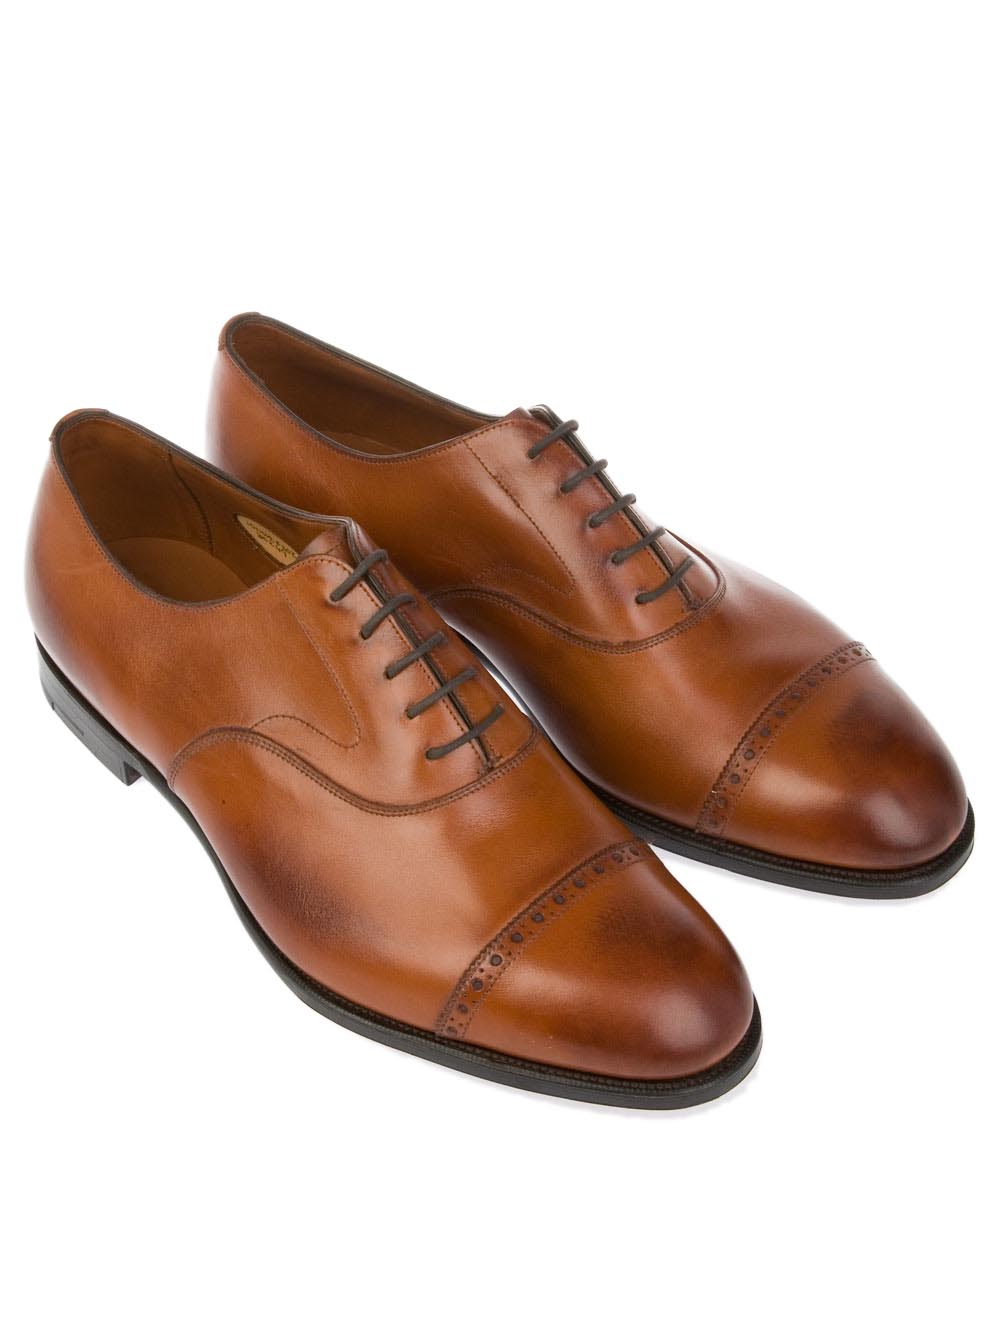 Edward Green Berkeley Shoe Chestnut | BERKELEY | Botta & B Online Store